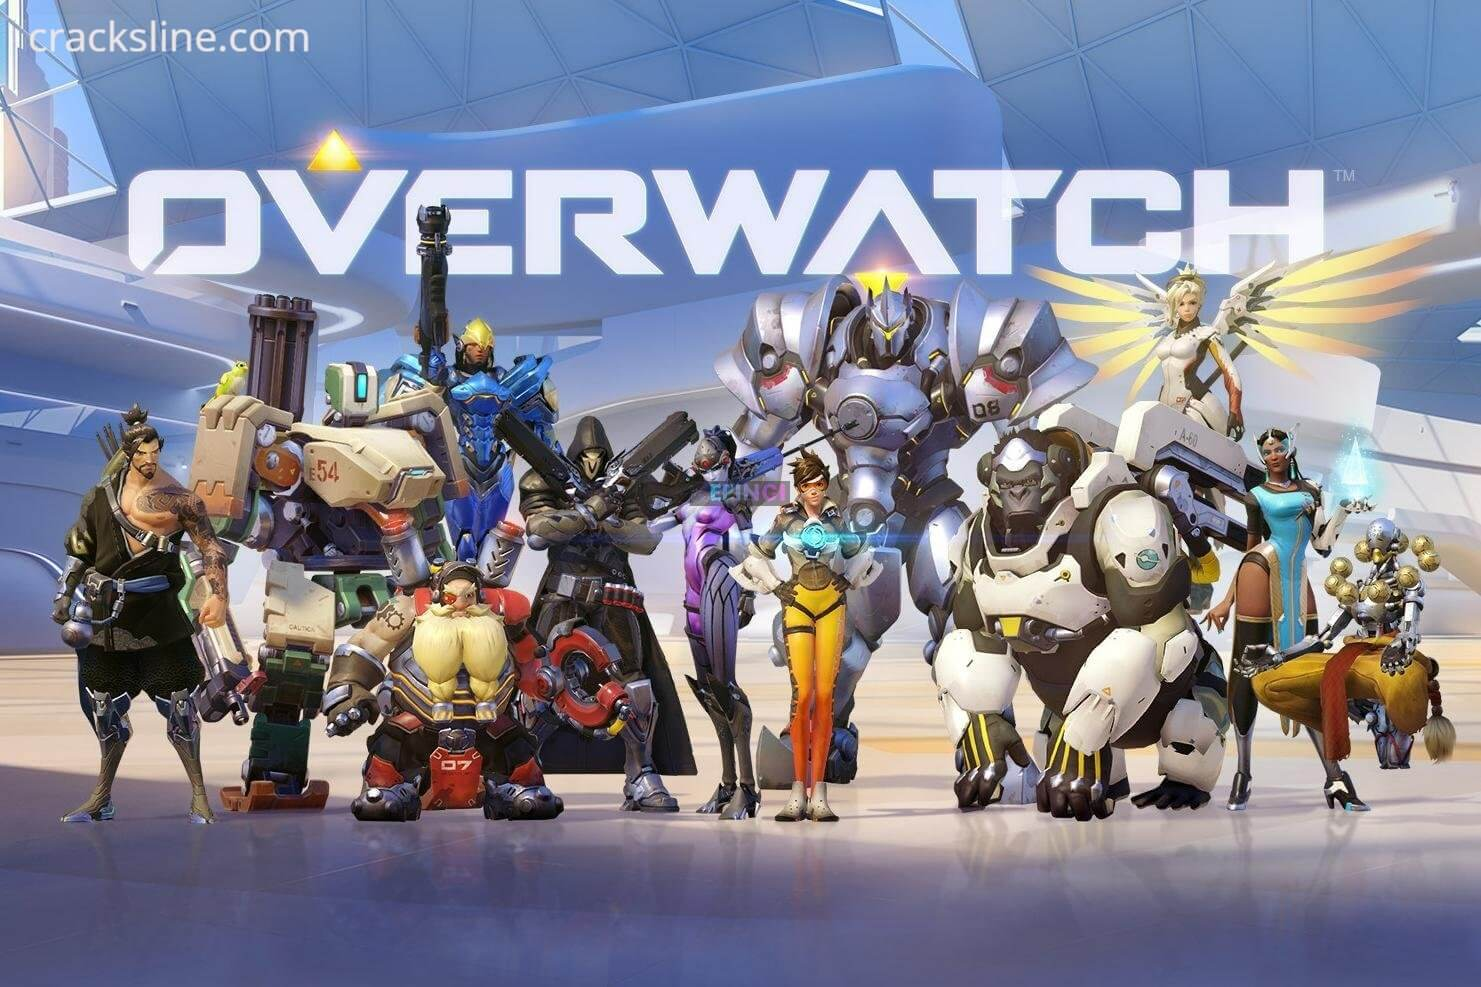 Overwatch Crack Plus Serial Key [Latest]